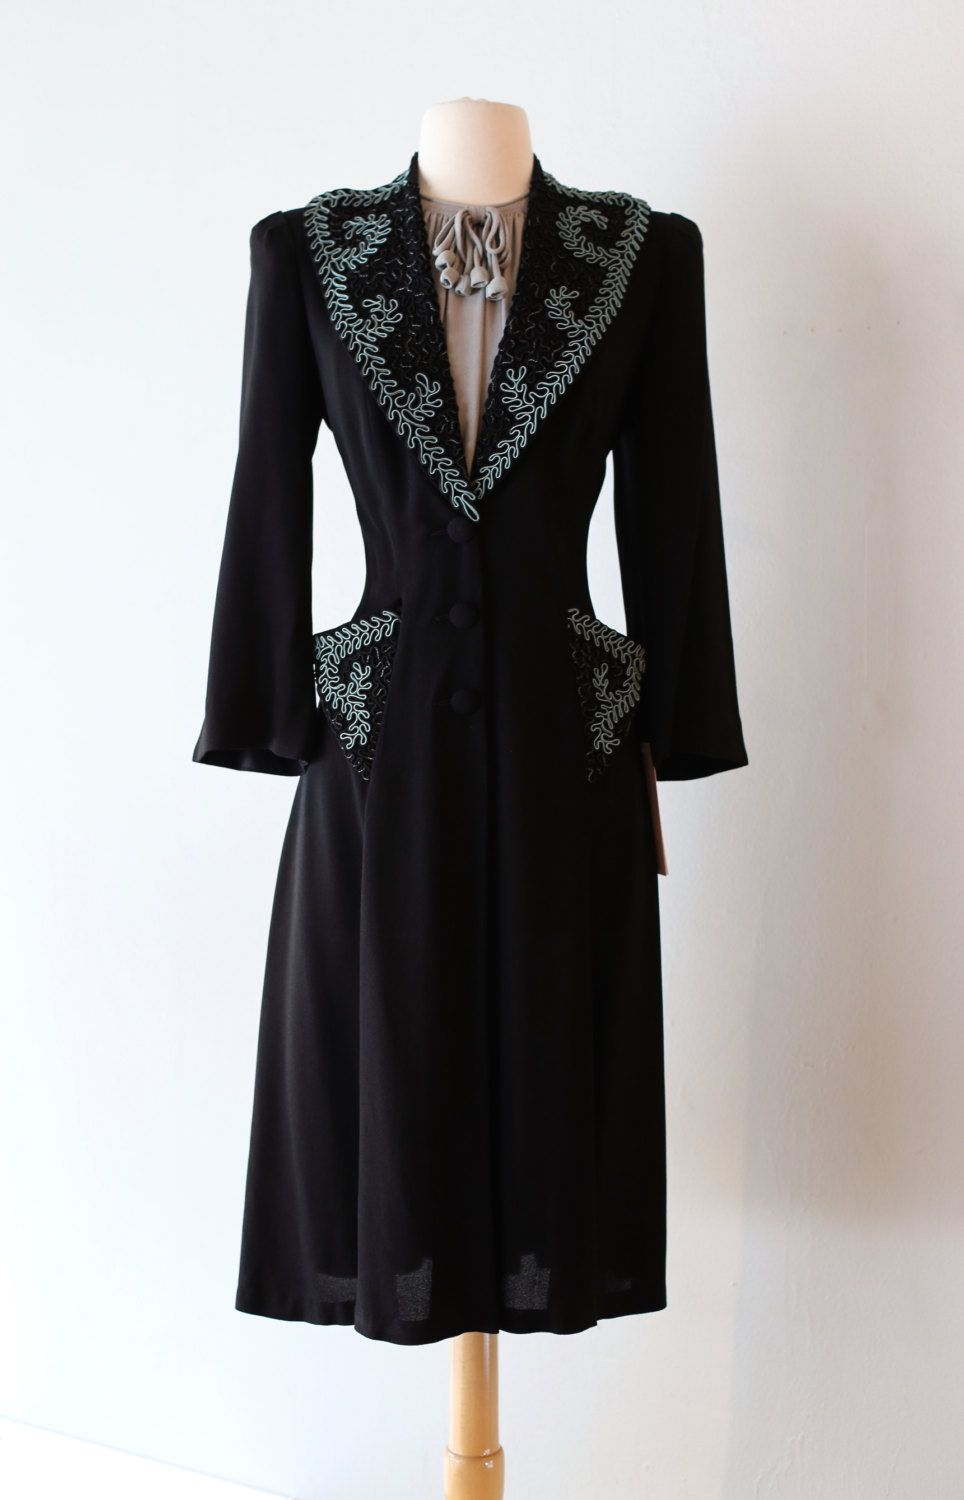 Vintage 1940's Rayon Dress With Dramatic Soutache Collar and Pockets ~ Vintage 40s Rayon Princess Coat Dress Waist 30 by xtabayvintage on Etsy